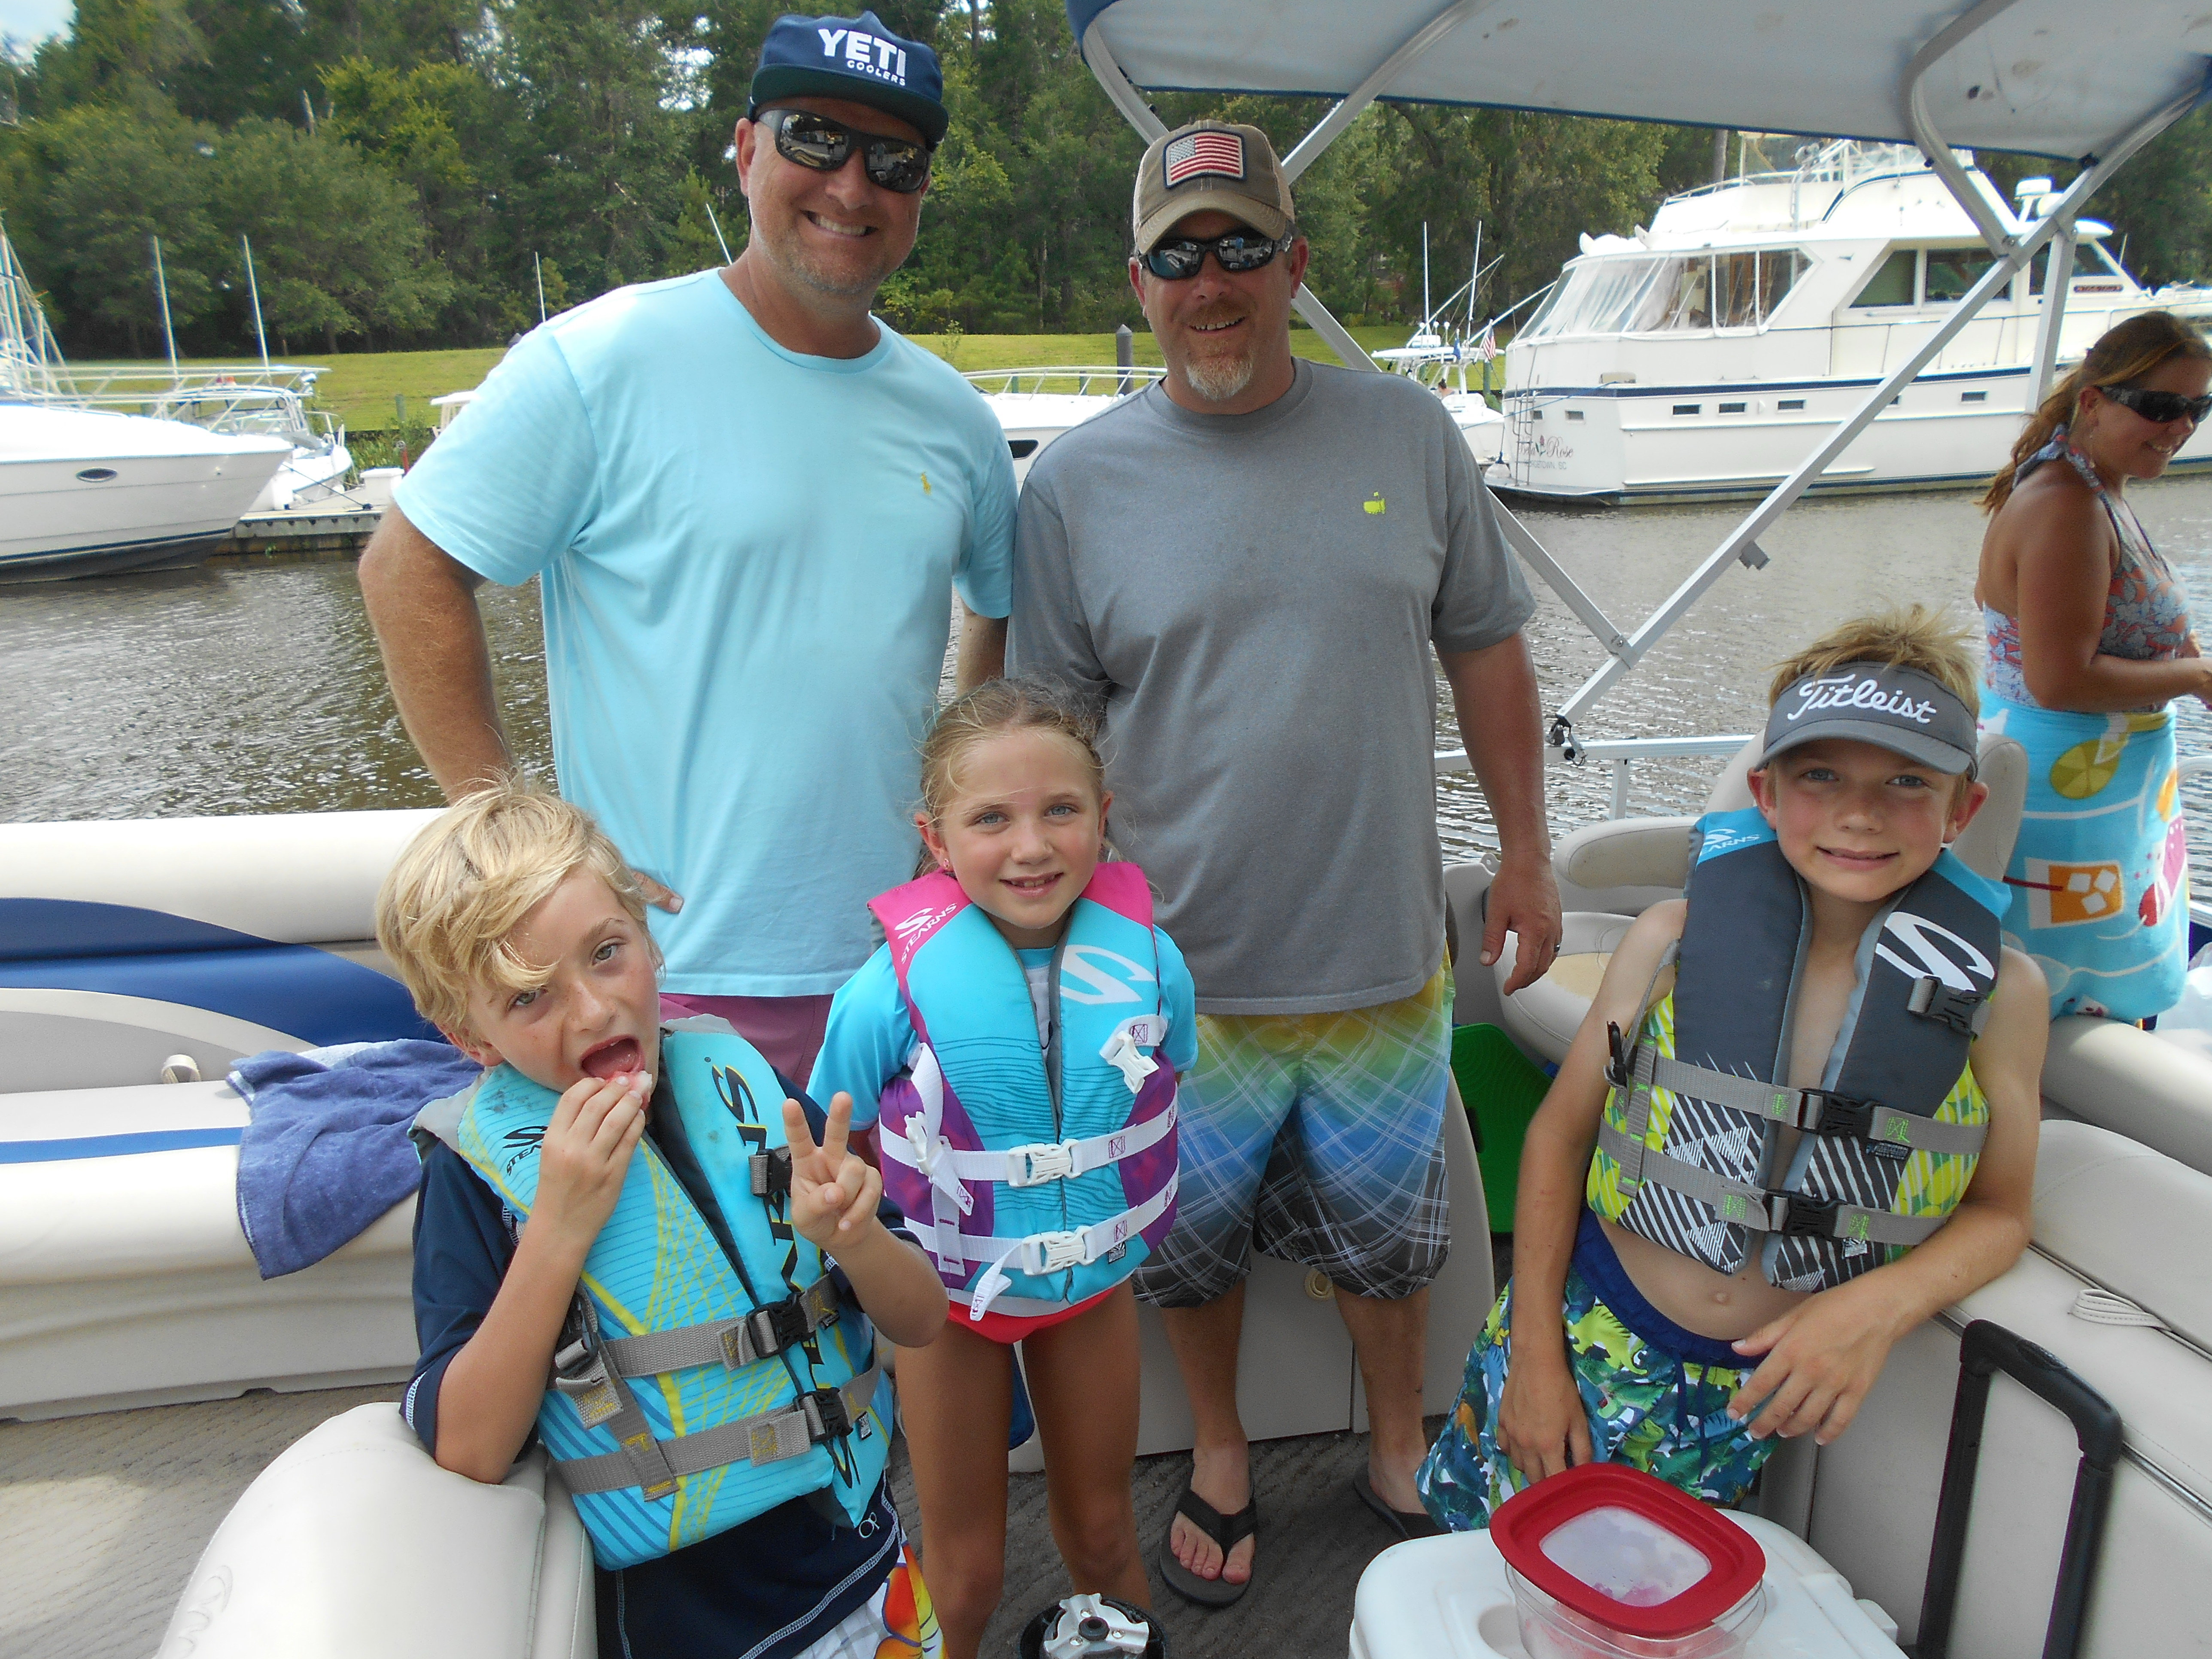 Family on their boat at Reserve Harbor Yacht Club